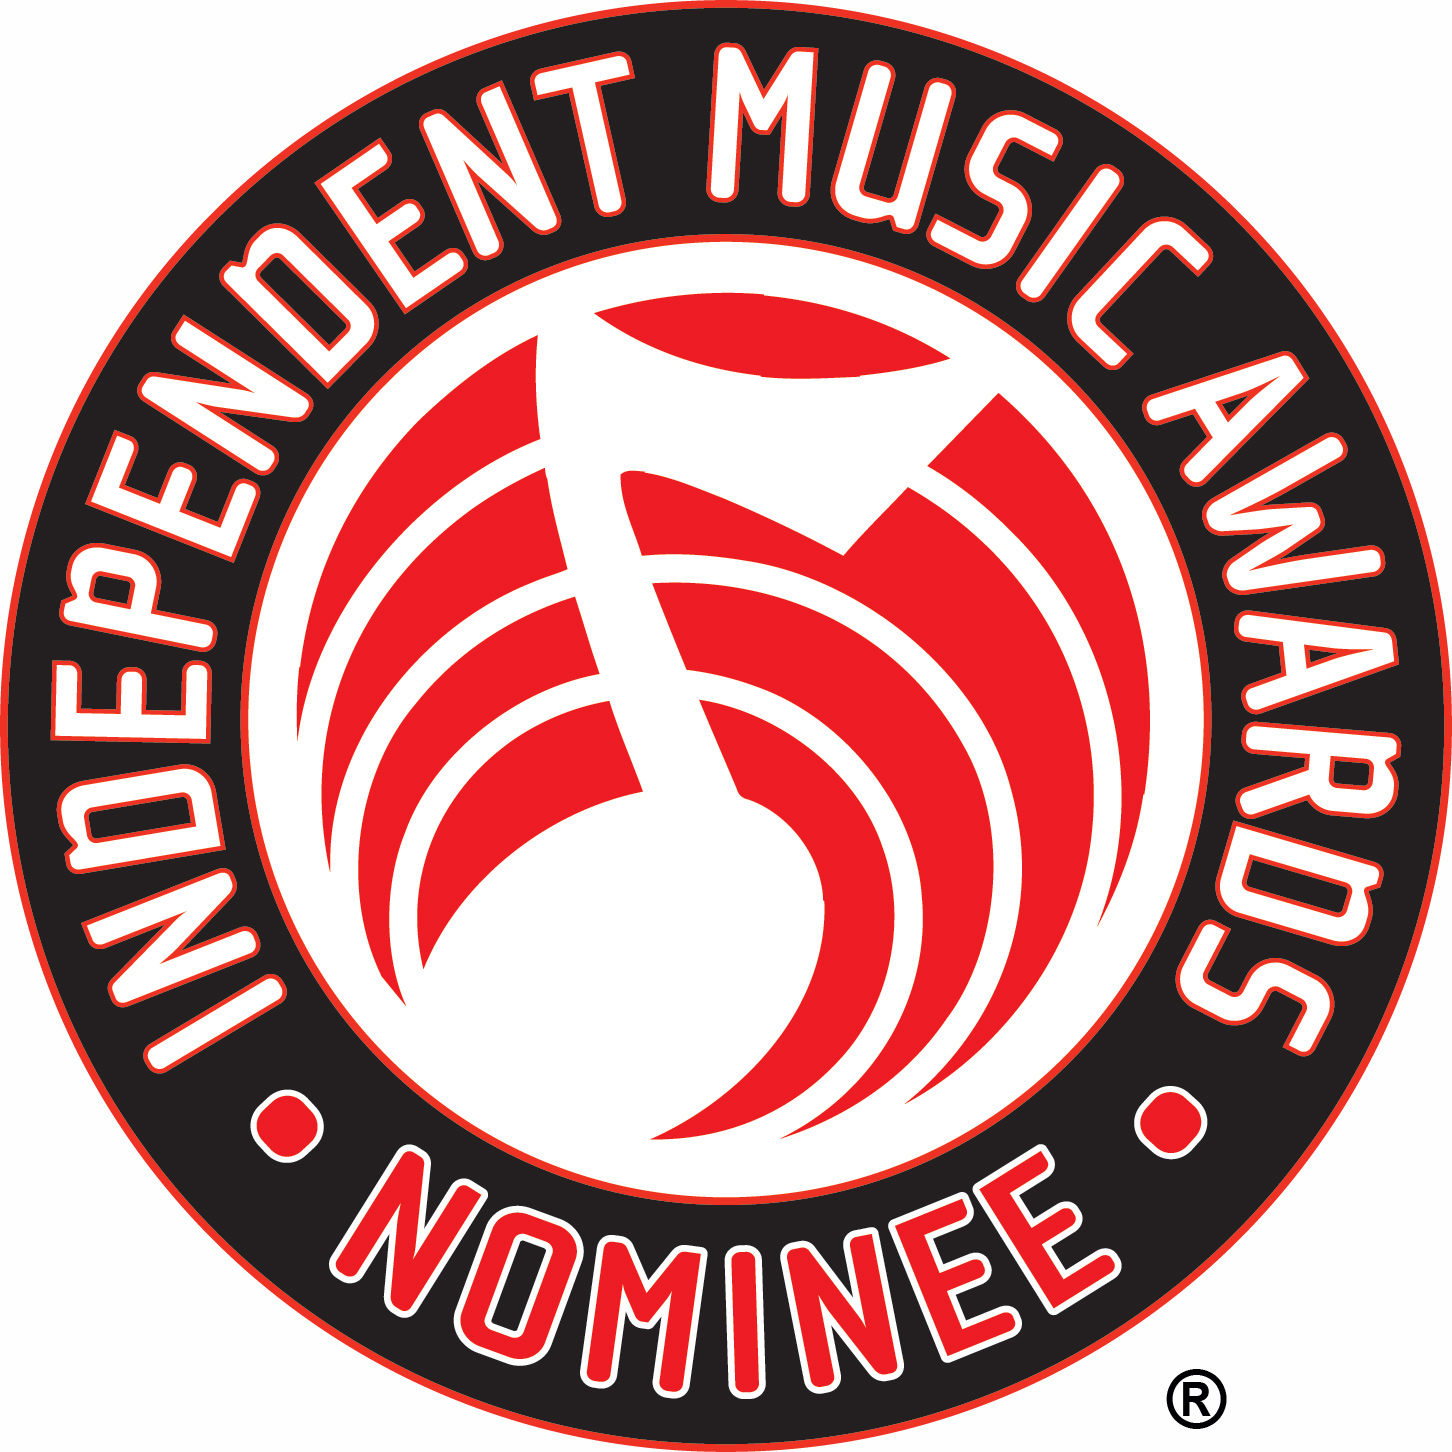 Independent Music Awards Nominee - Dreamtime: Cornell Kinderknecht and Martin McCall